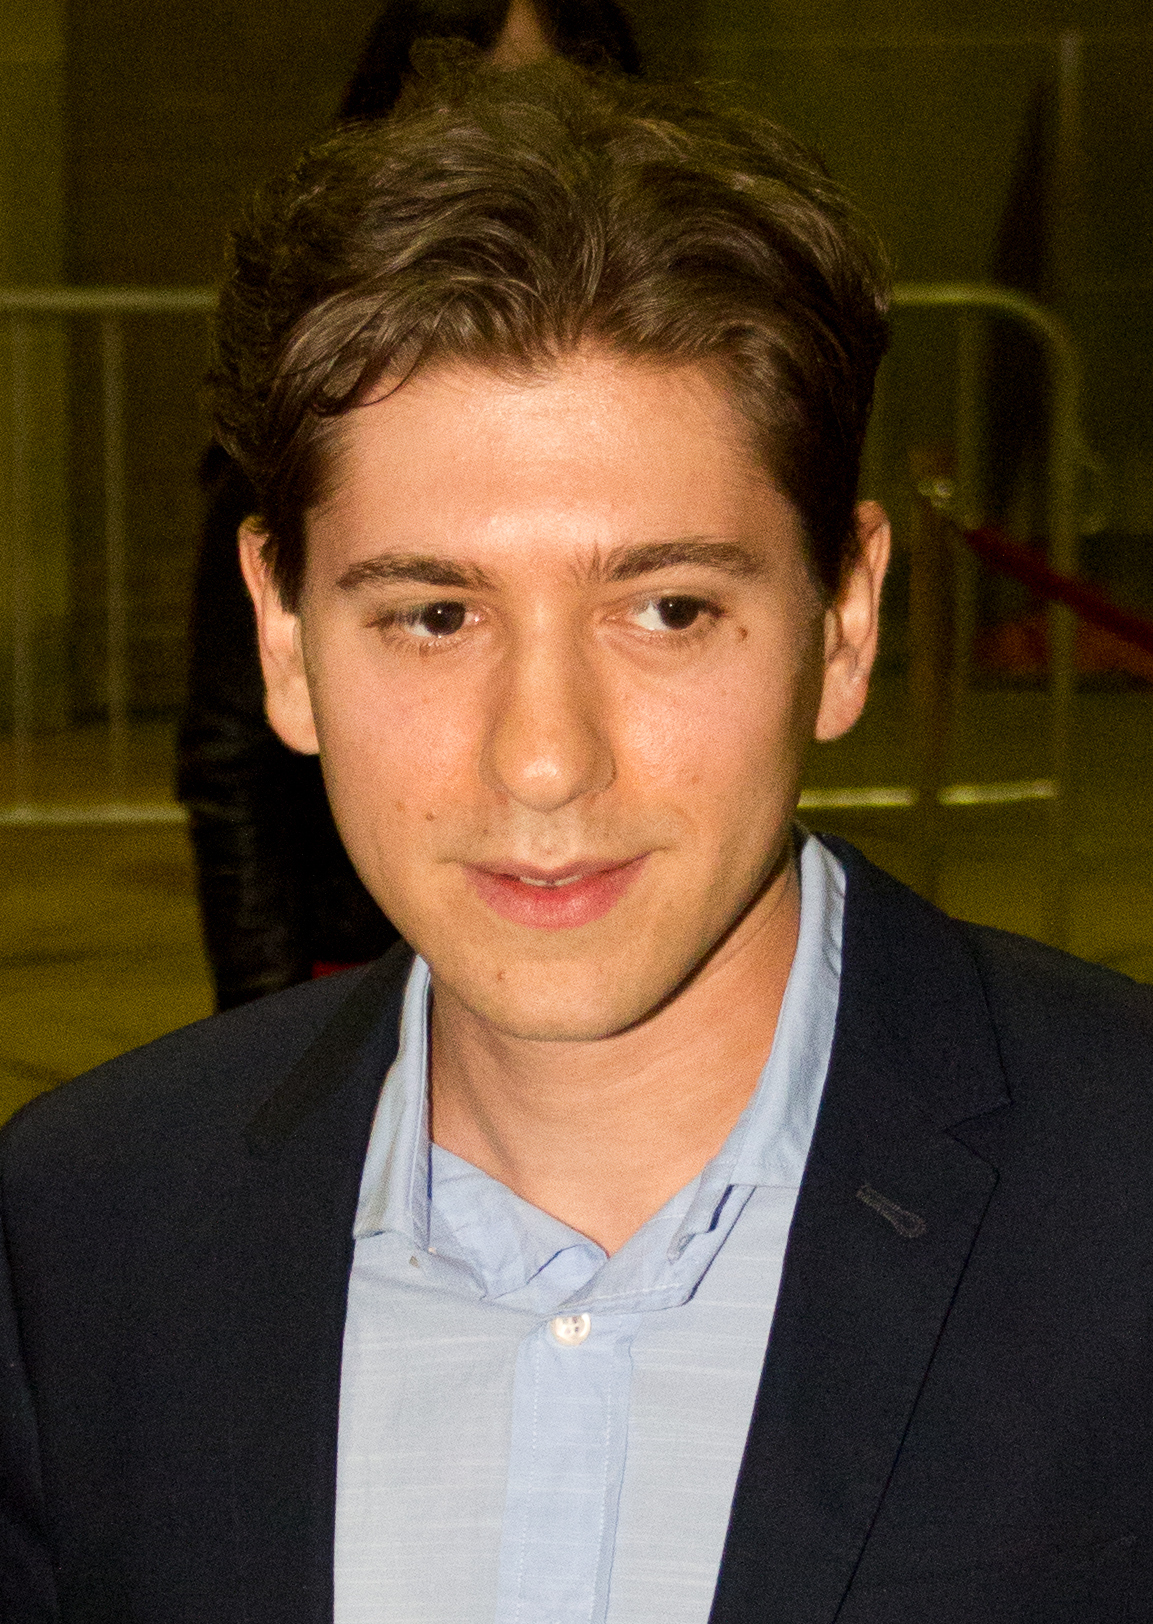 michael zegen heightmichael zegen height, michael zegen instagram, michael zegen and emily kinney, michael zegen, michael zegen age, michael zegen twitter, michael zegen rescue me, michael zegen facebook, michael zegen jon bernthal, michael zegen 2015, michael zegen walking dead, michael zegen boardwalk empire, michael zegen girlfriend, michael zegen imdb, michael zegen interview, michael zegen shirtless, michael zegen tumblr, michael zegen net worth, michael zegen a view from the bridge, michael zegen frances ha